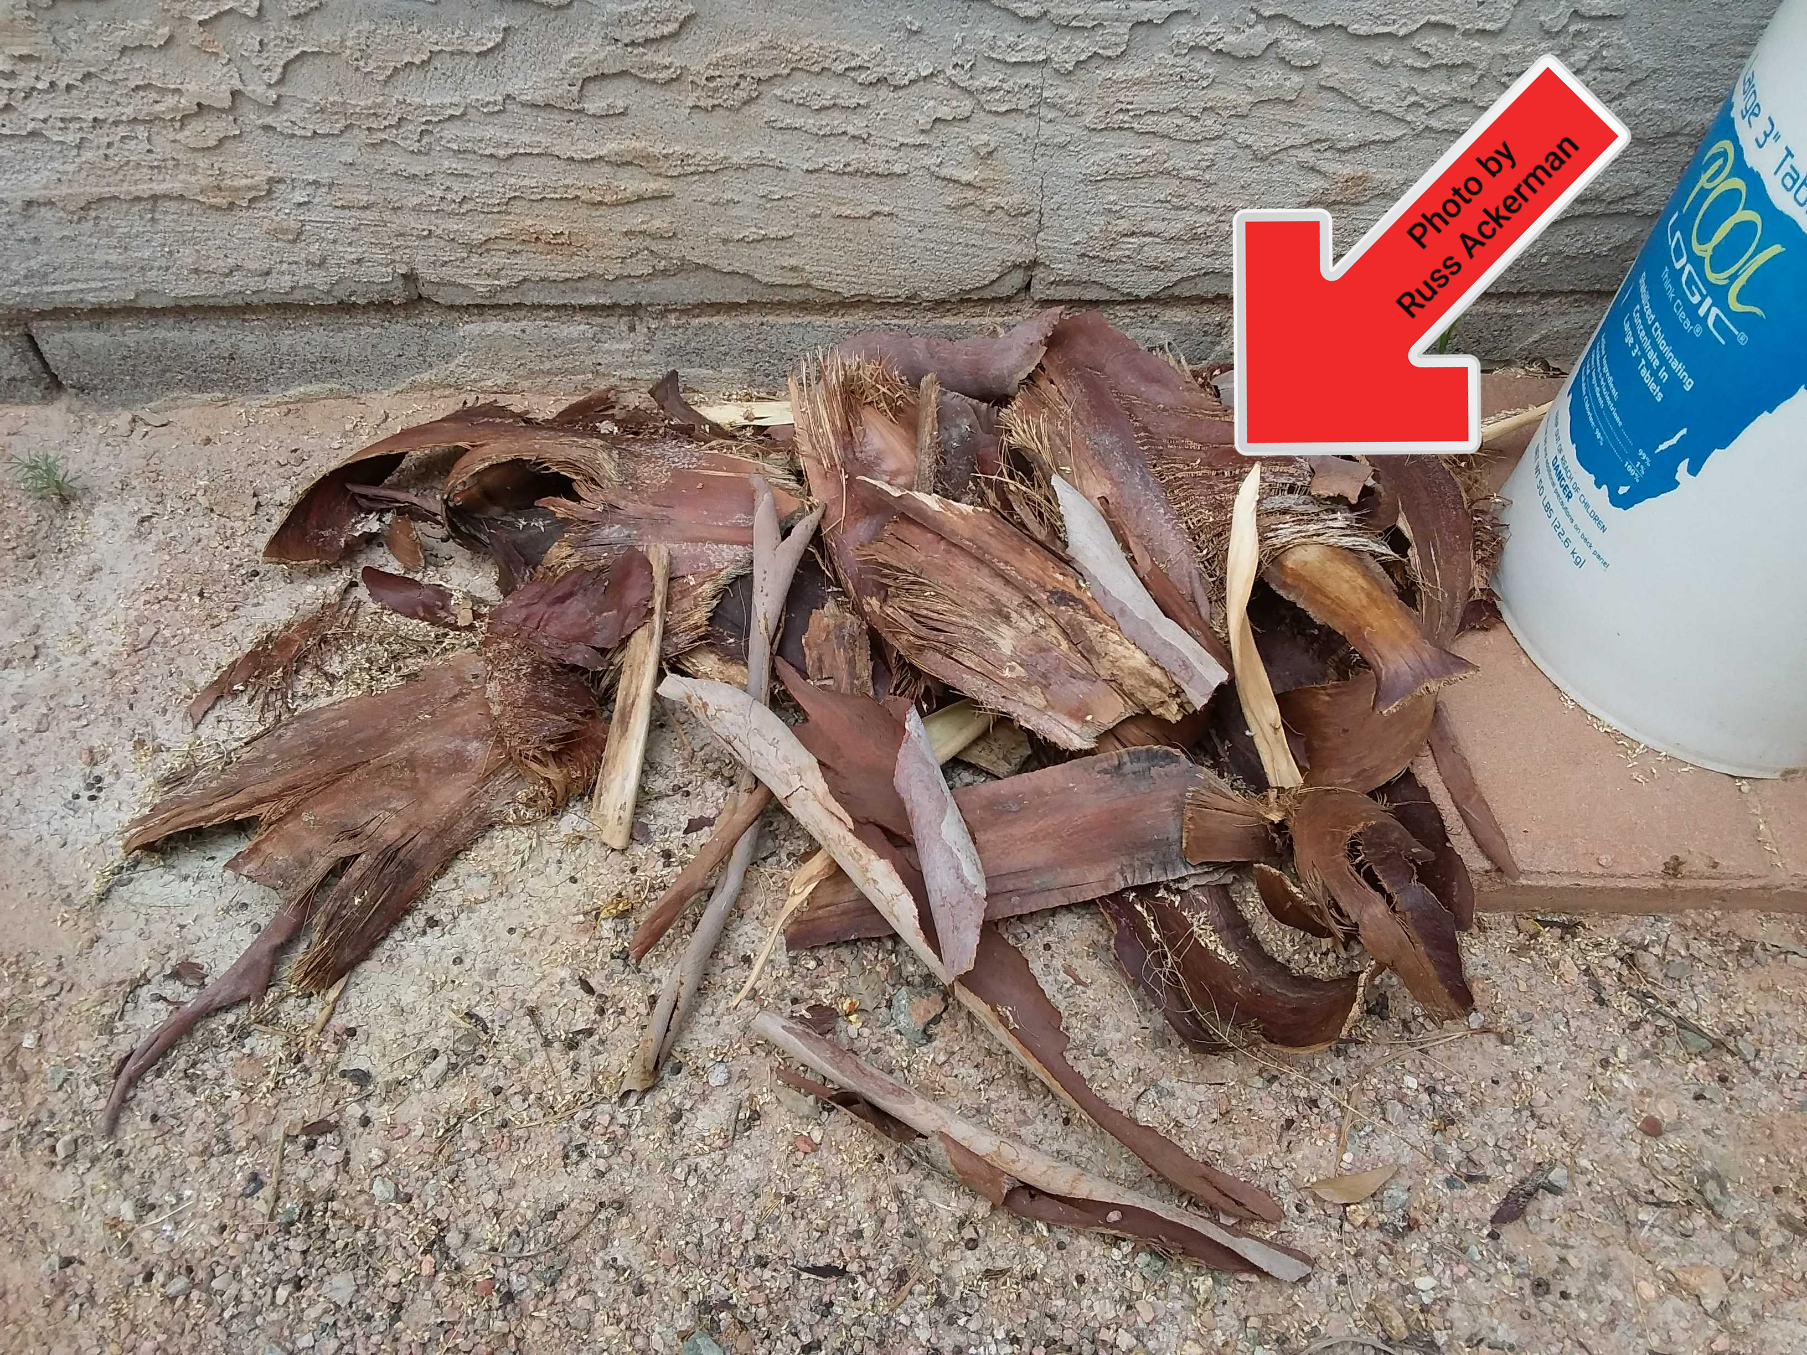 Debris from palm trees offer a perfect environment for scorpions and rodents. Keep exterior areas free of debris.